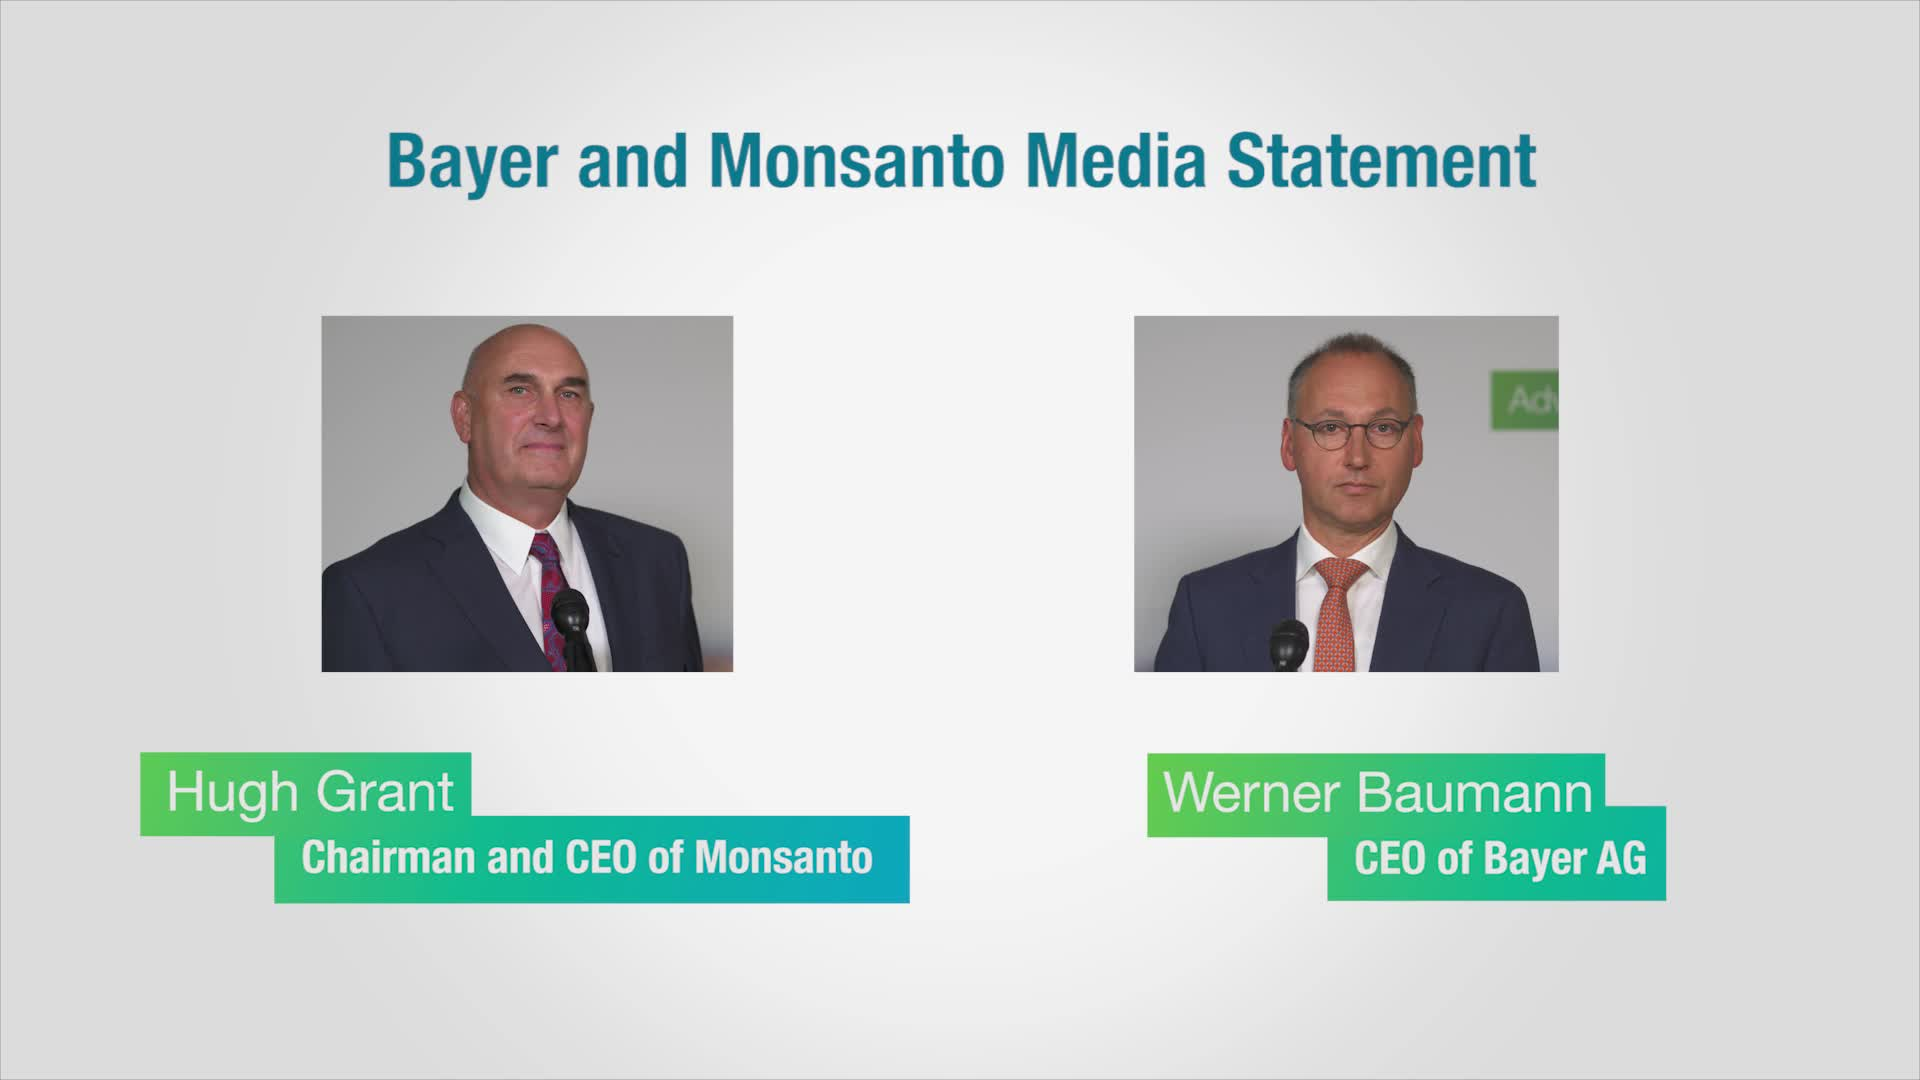 Video of Werner Baumann, CEO of Bayer AG and Hugh Grant, Chairman and CEO of Monsanto